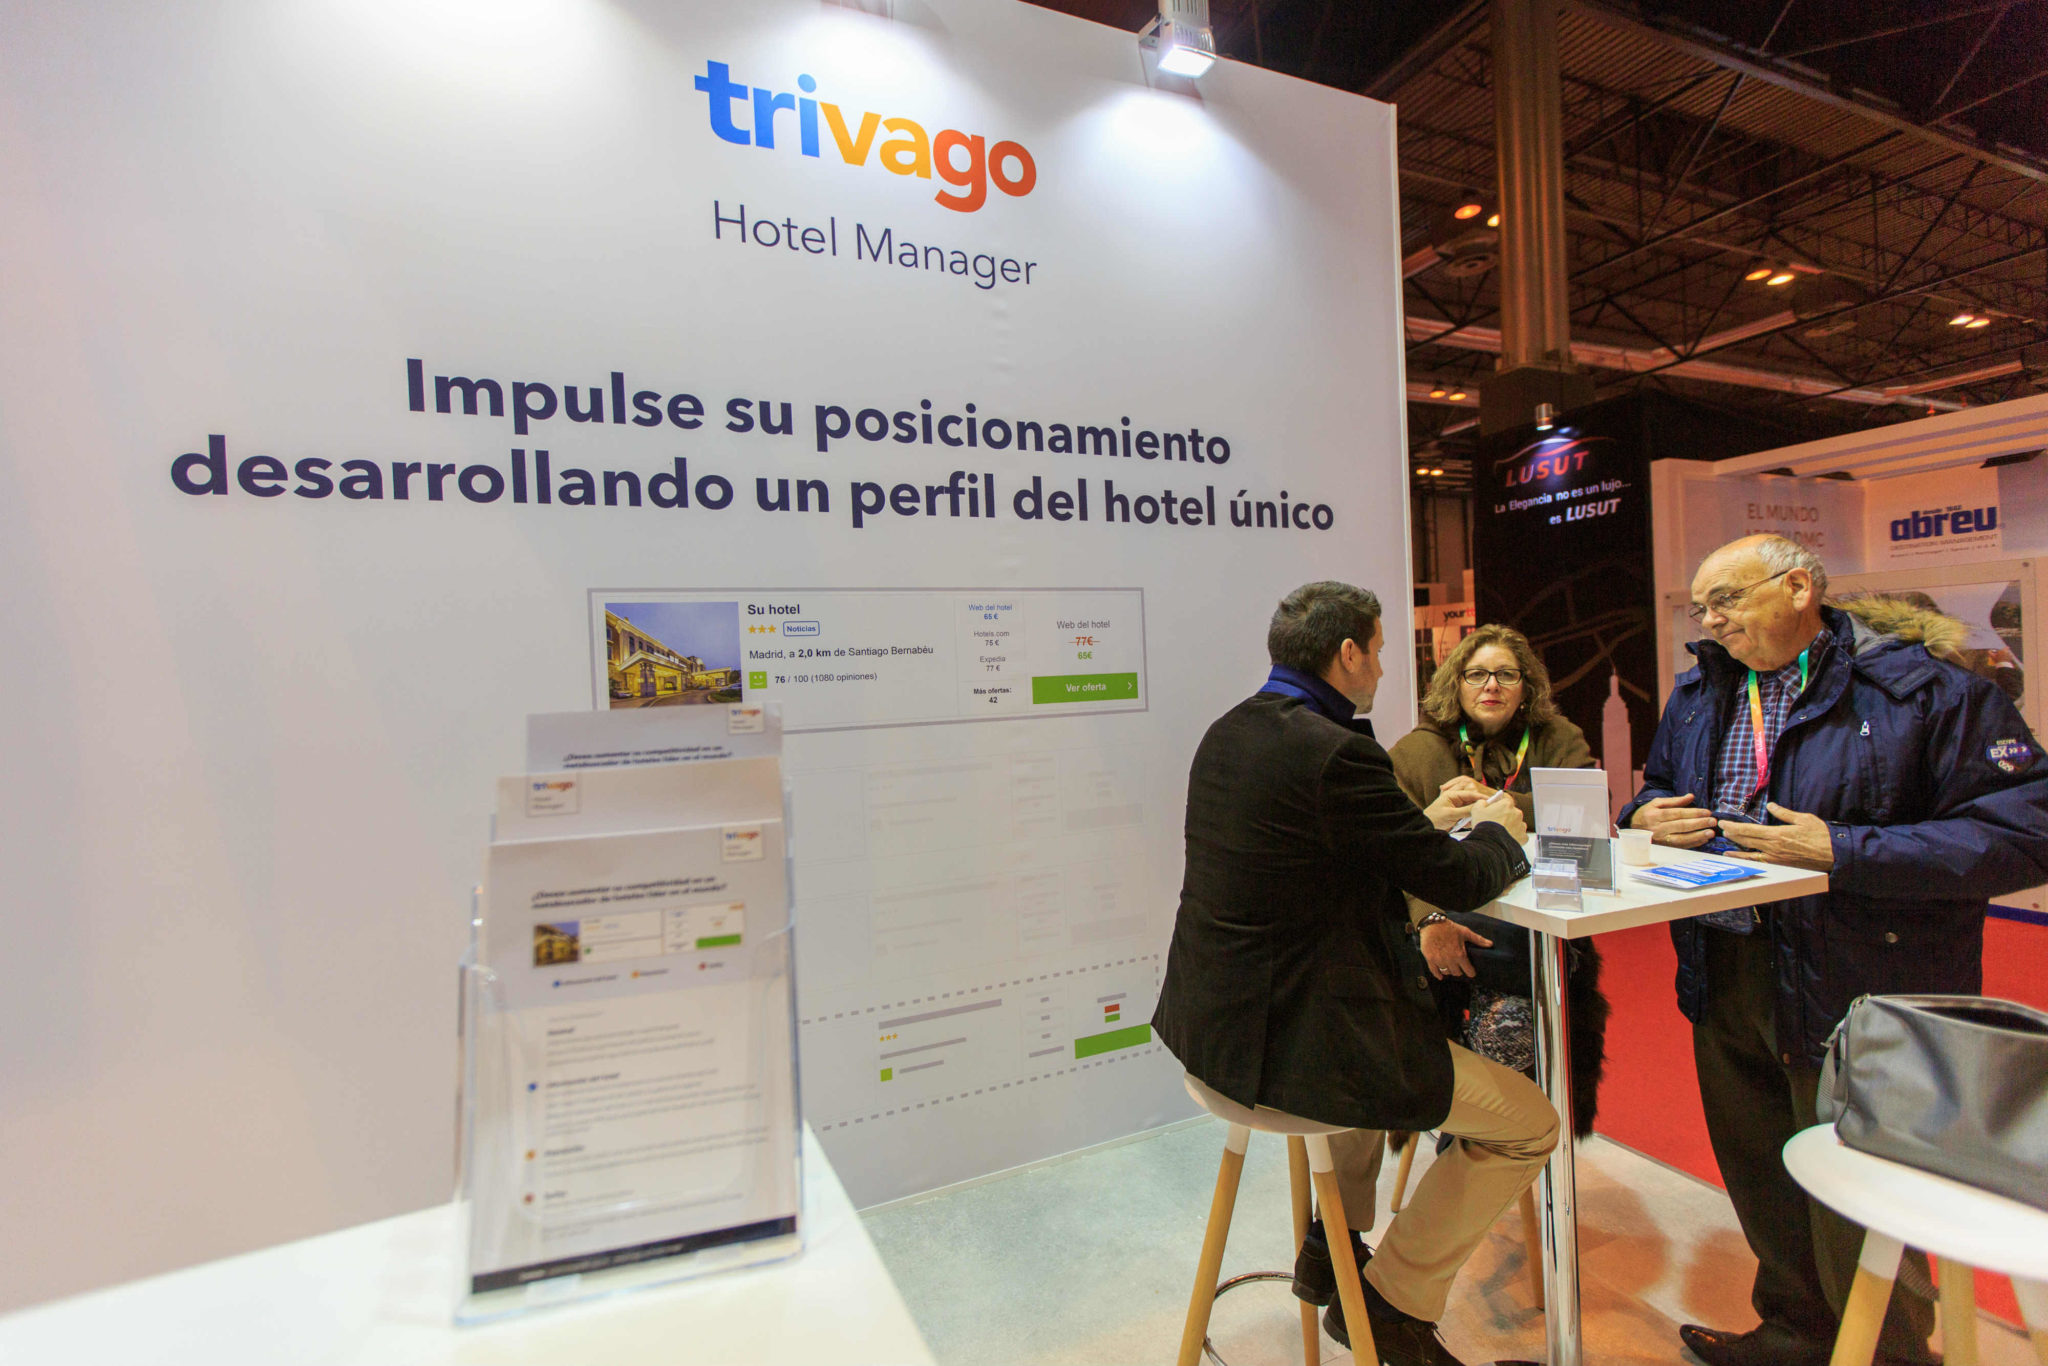 stand de trivago Hotel Manager